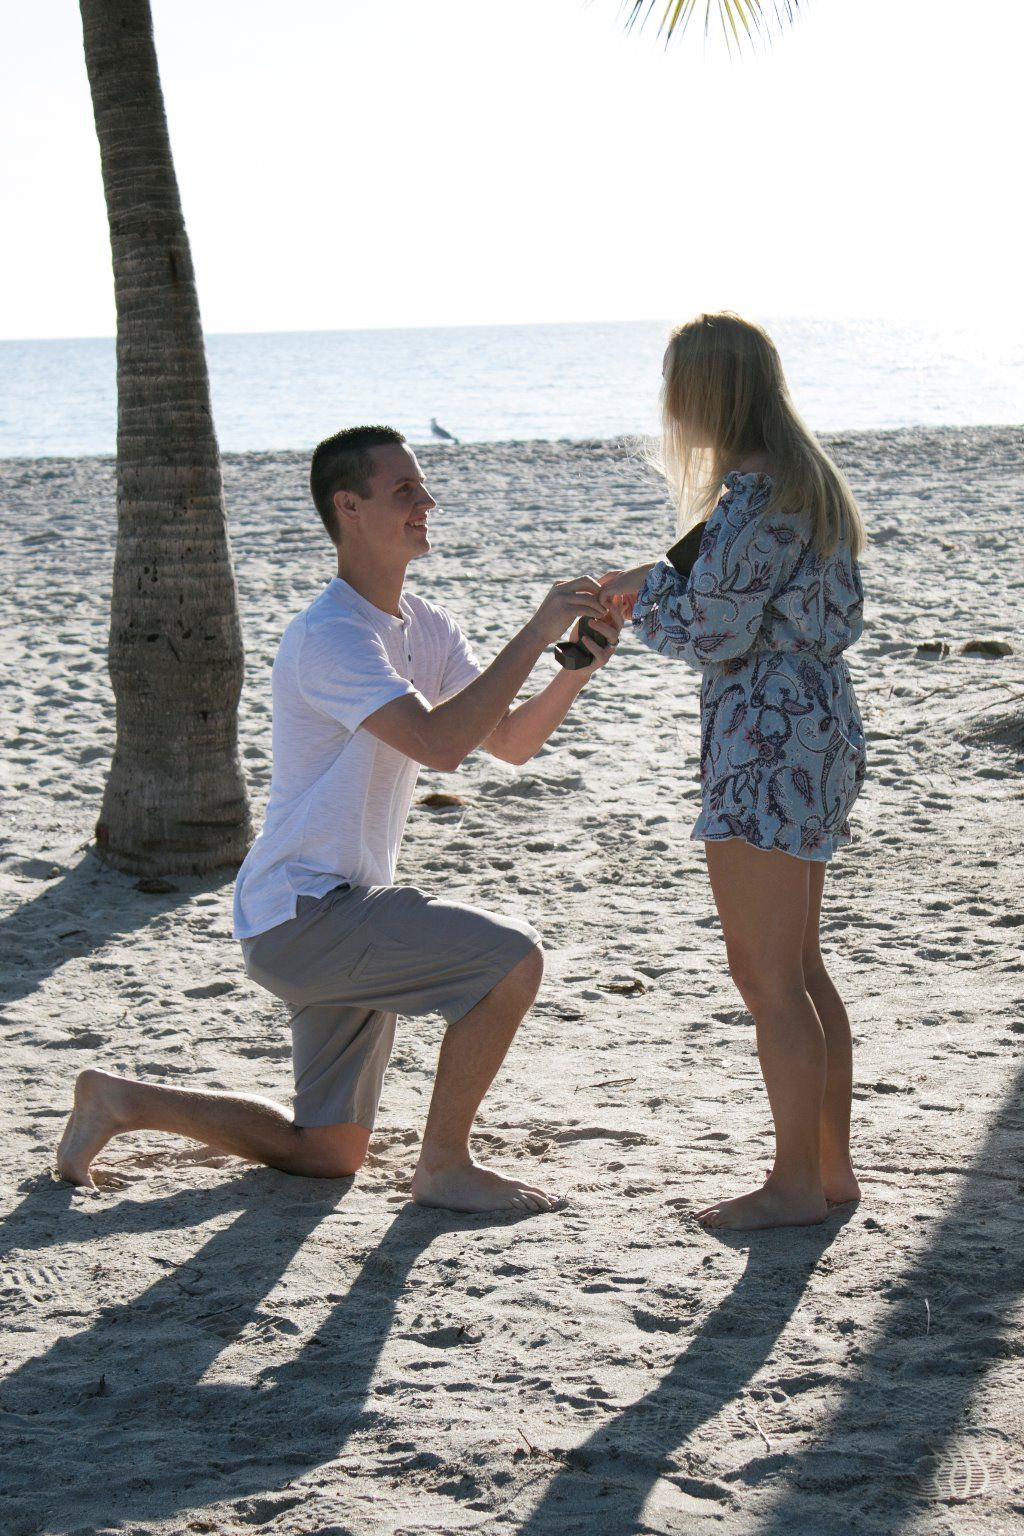 Engagement Photography - Key Biscayne 2020